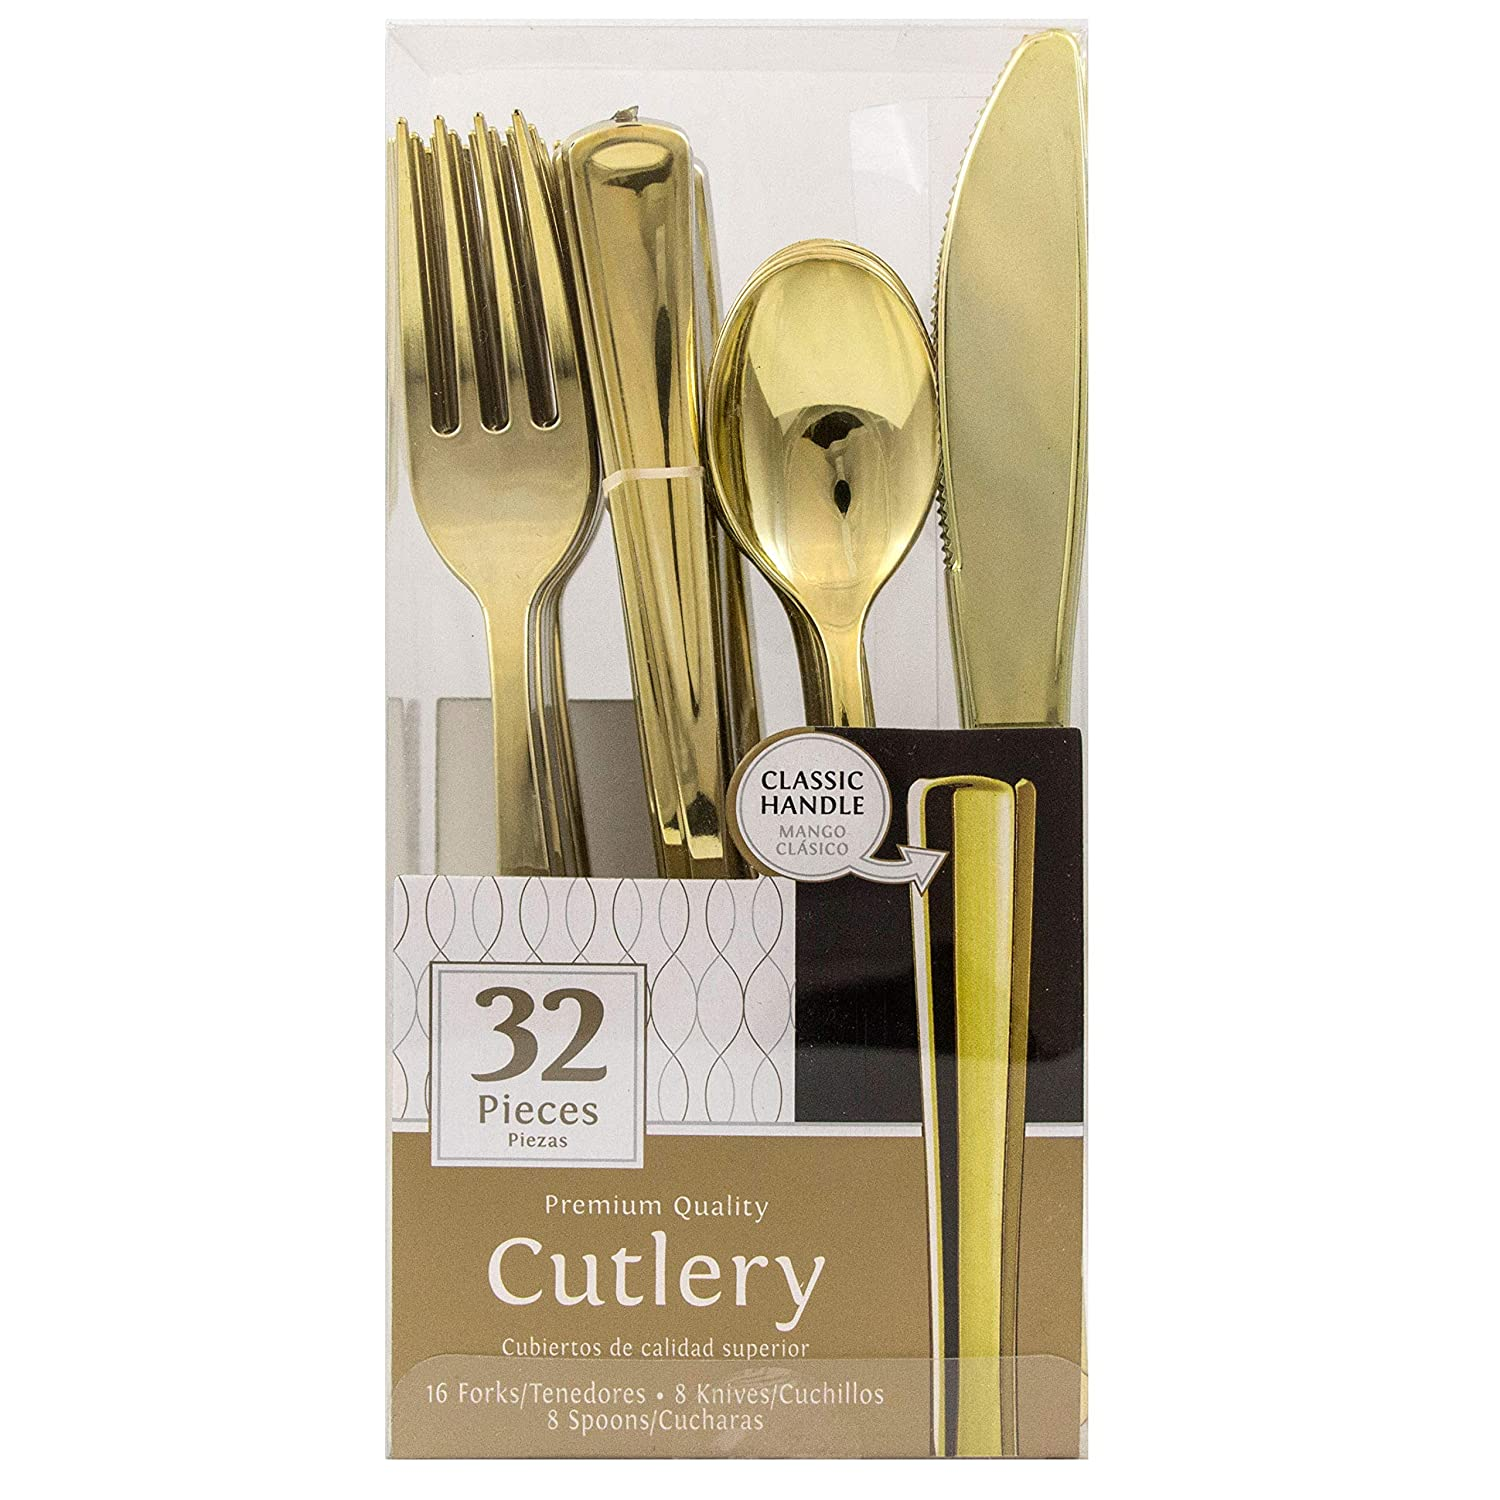 Amazon.com: JAM PAPER Premium Cutlery - Assorted Utensils Set - Metallic Stainless Silver - 32 Disposable Utensils/Box: Kitchen & Dining